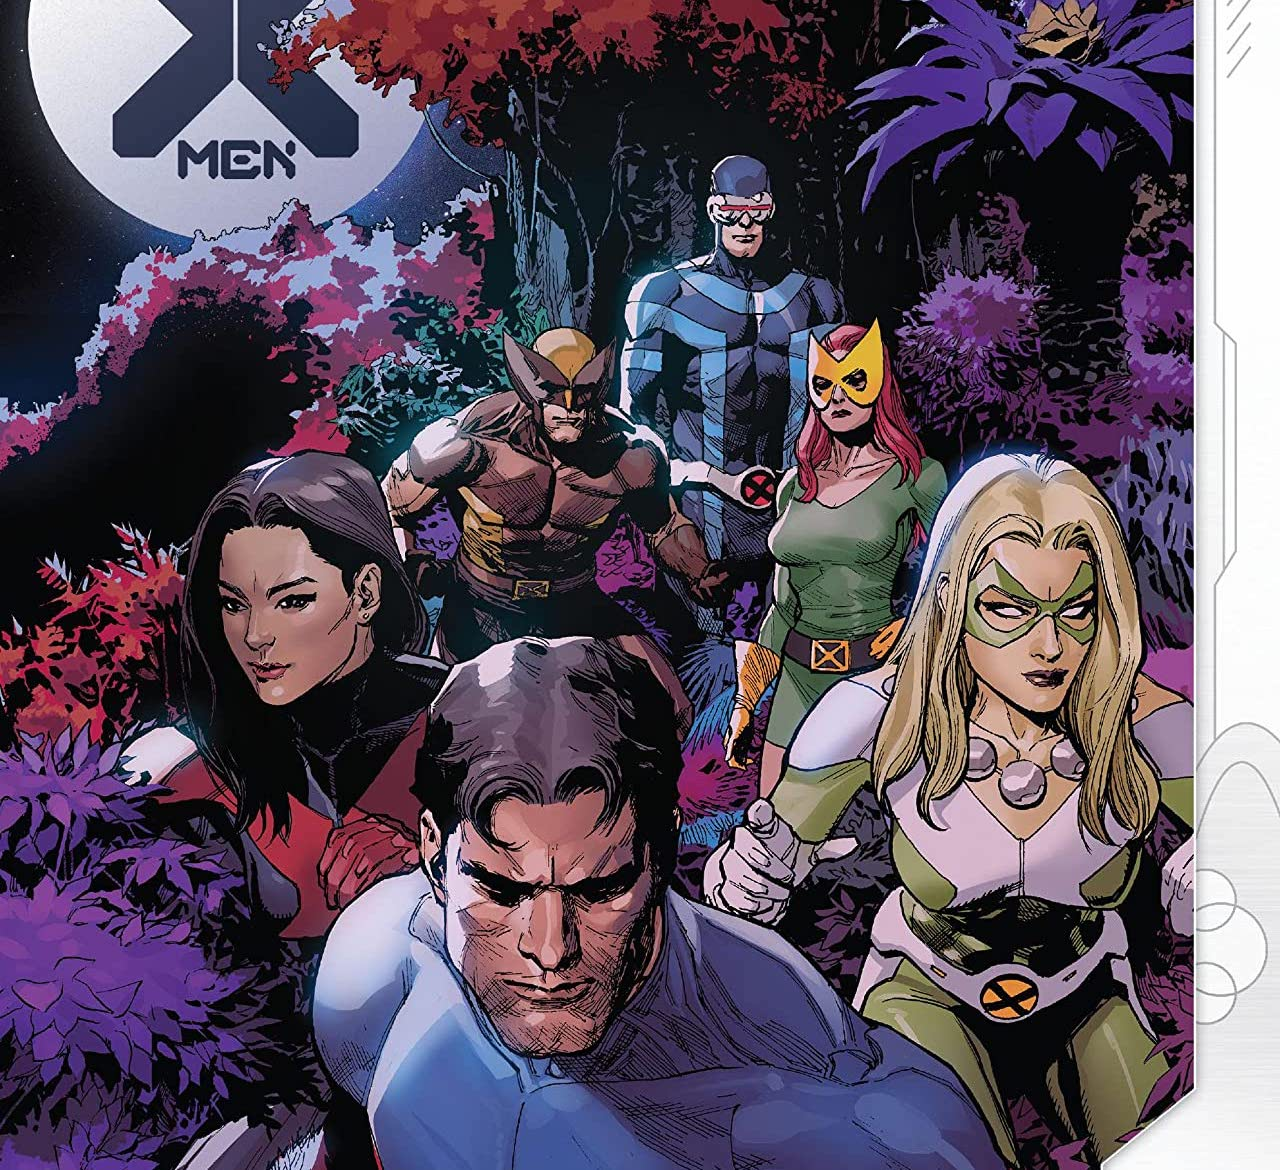 'X-Men' #10 review: Vulcan and the terrible, horrible, no good, very bad day